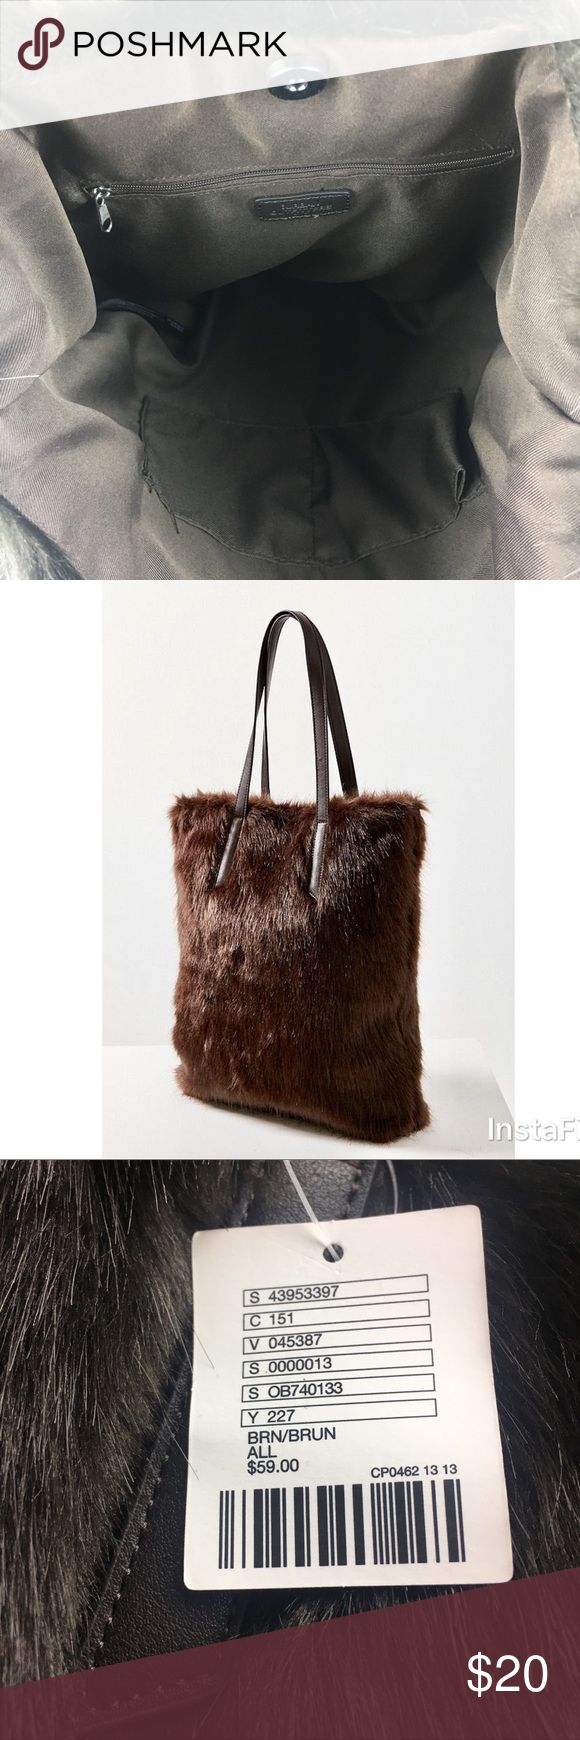 NWT Urban Outfitters Faux Fur Tote Bag Brand new with tags! Never worn. Oversized and roomy inside. Lined interior with zipper and pockets for phone/make up. Brown faux fur. Length: 15.75 inches. Width: 4.13 inches. Height: 17.7 inches. Handle drop: 9.84 inches. Smoke free home. Make a statement! Urban Outfitters Bags Totes